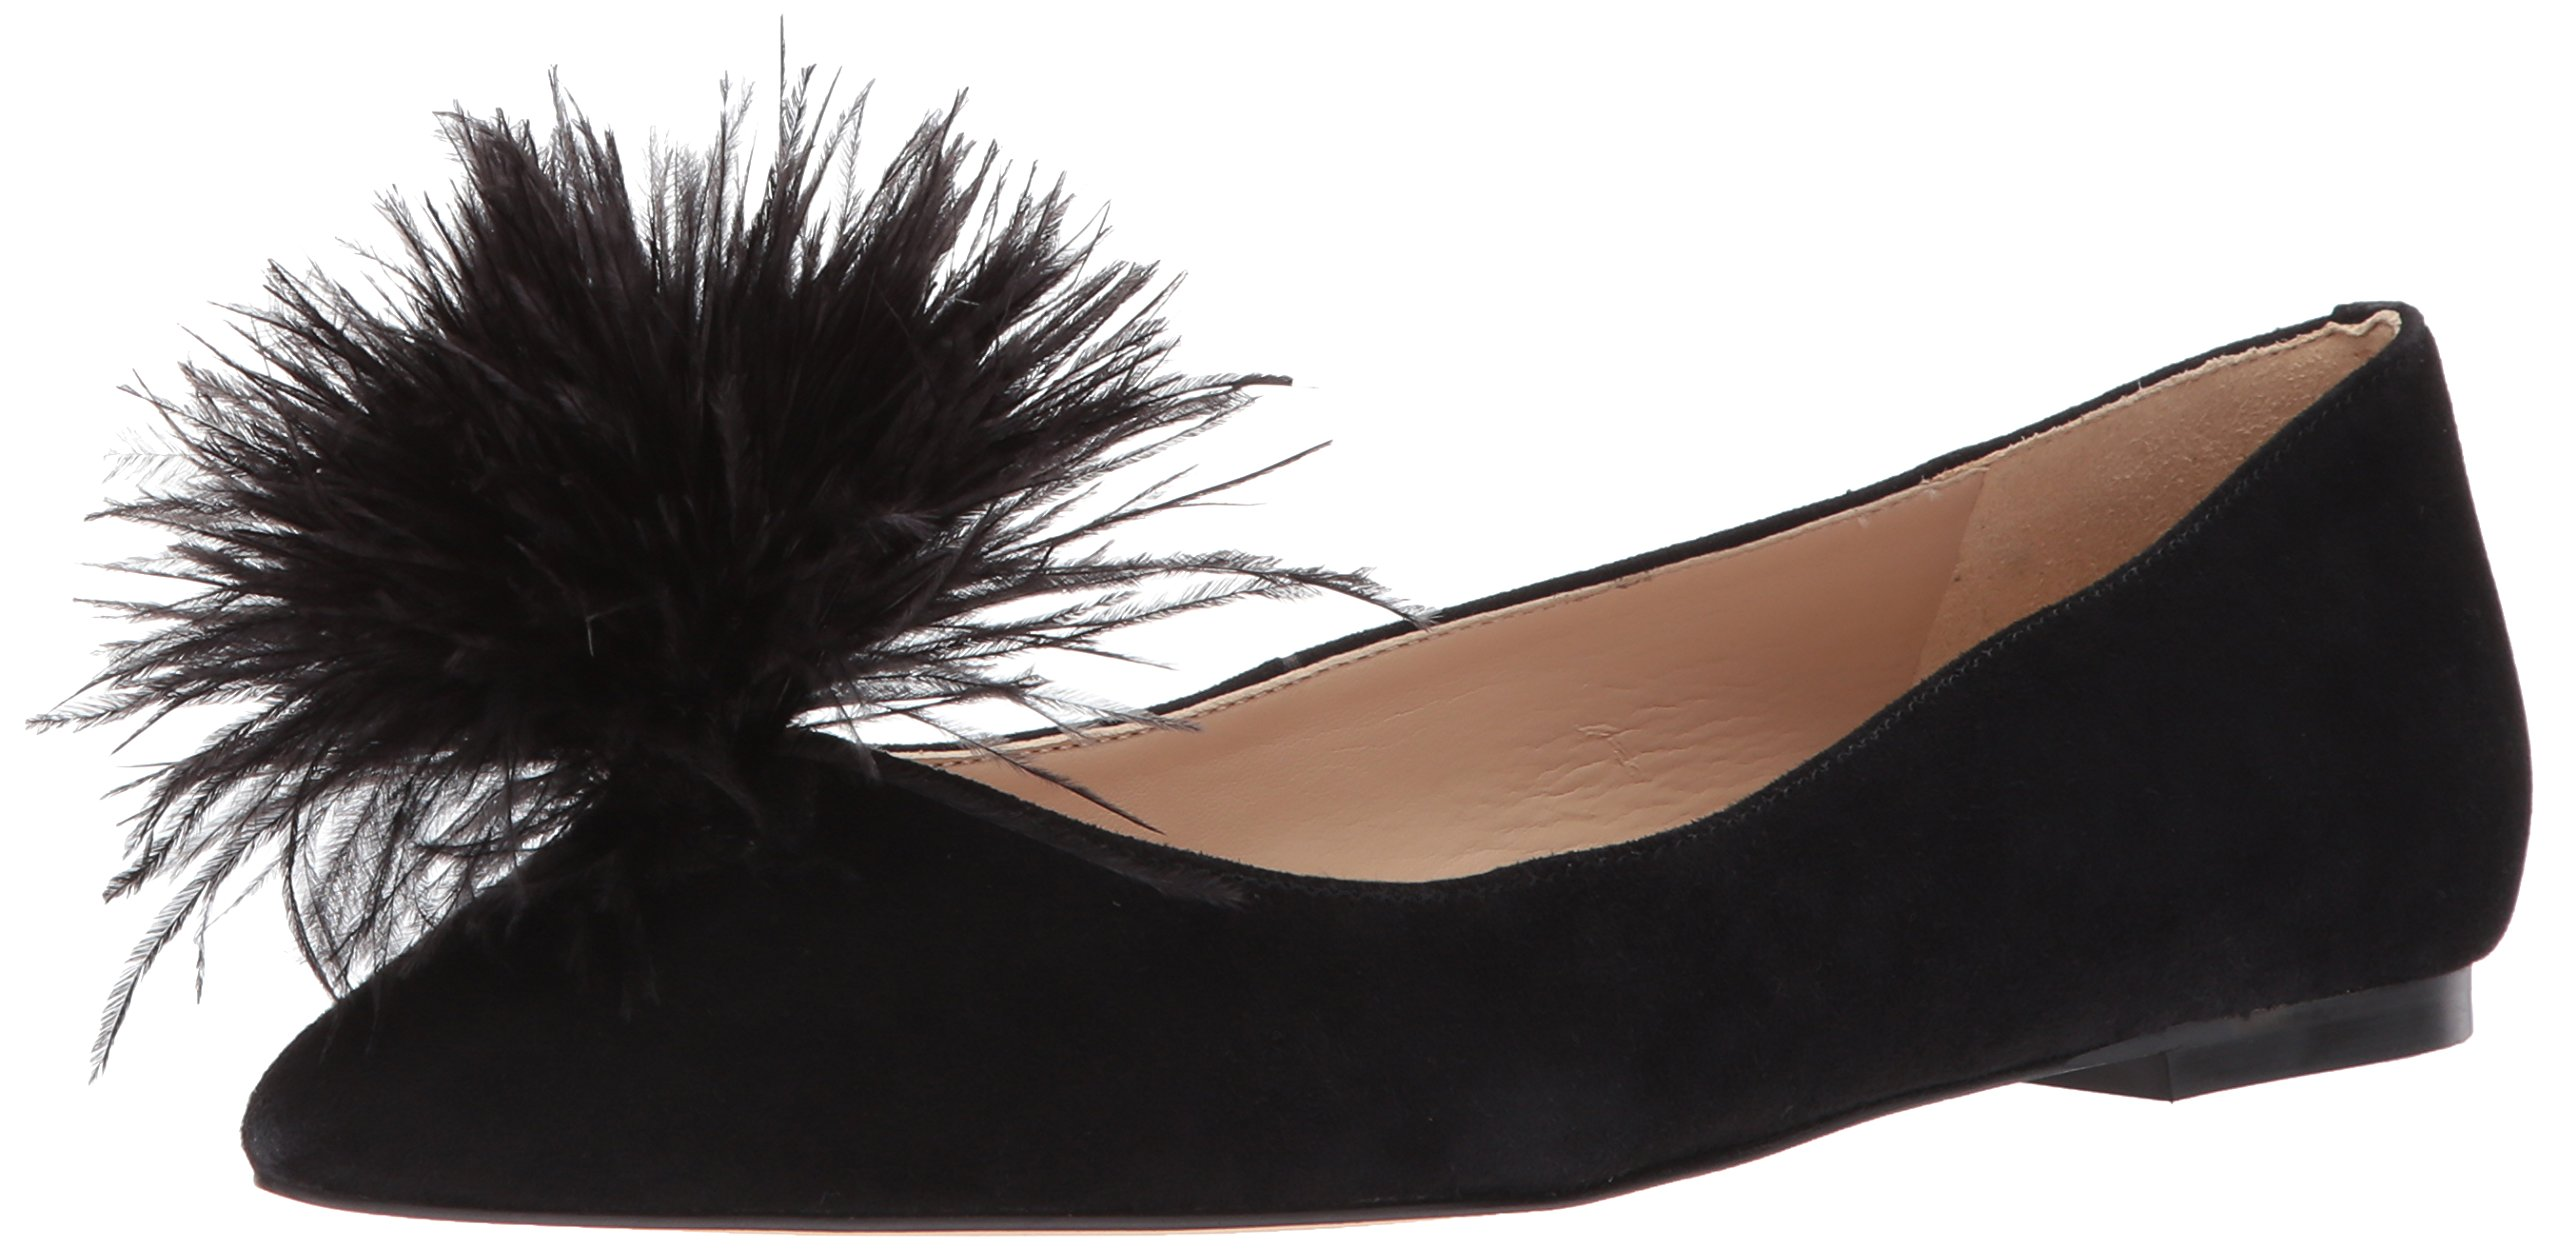 Sam Edelman Women's Reina Ballet Flat, Black Suede, 7.5 Medium US